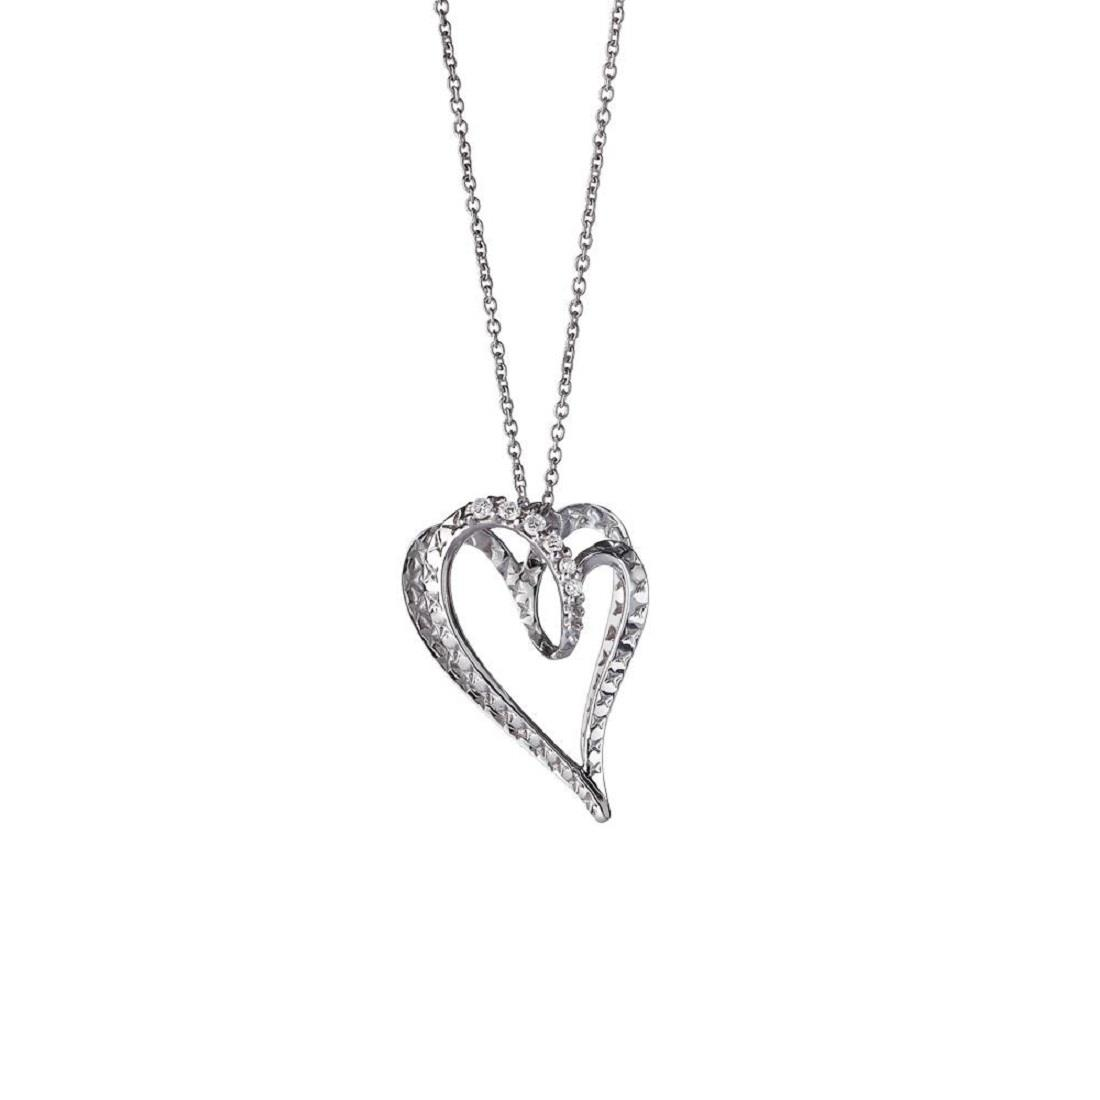 Small heart pendant in 18 kt white gold with 0,06 ct diamonds 